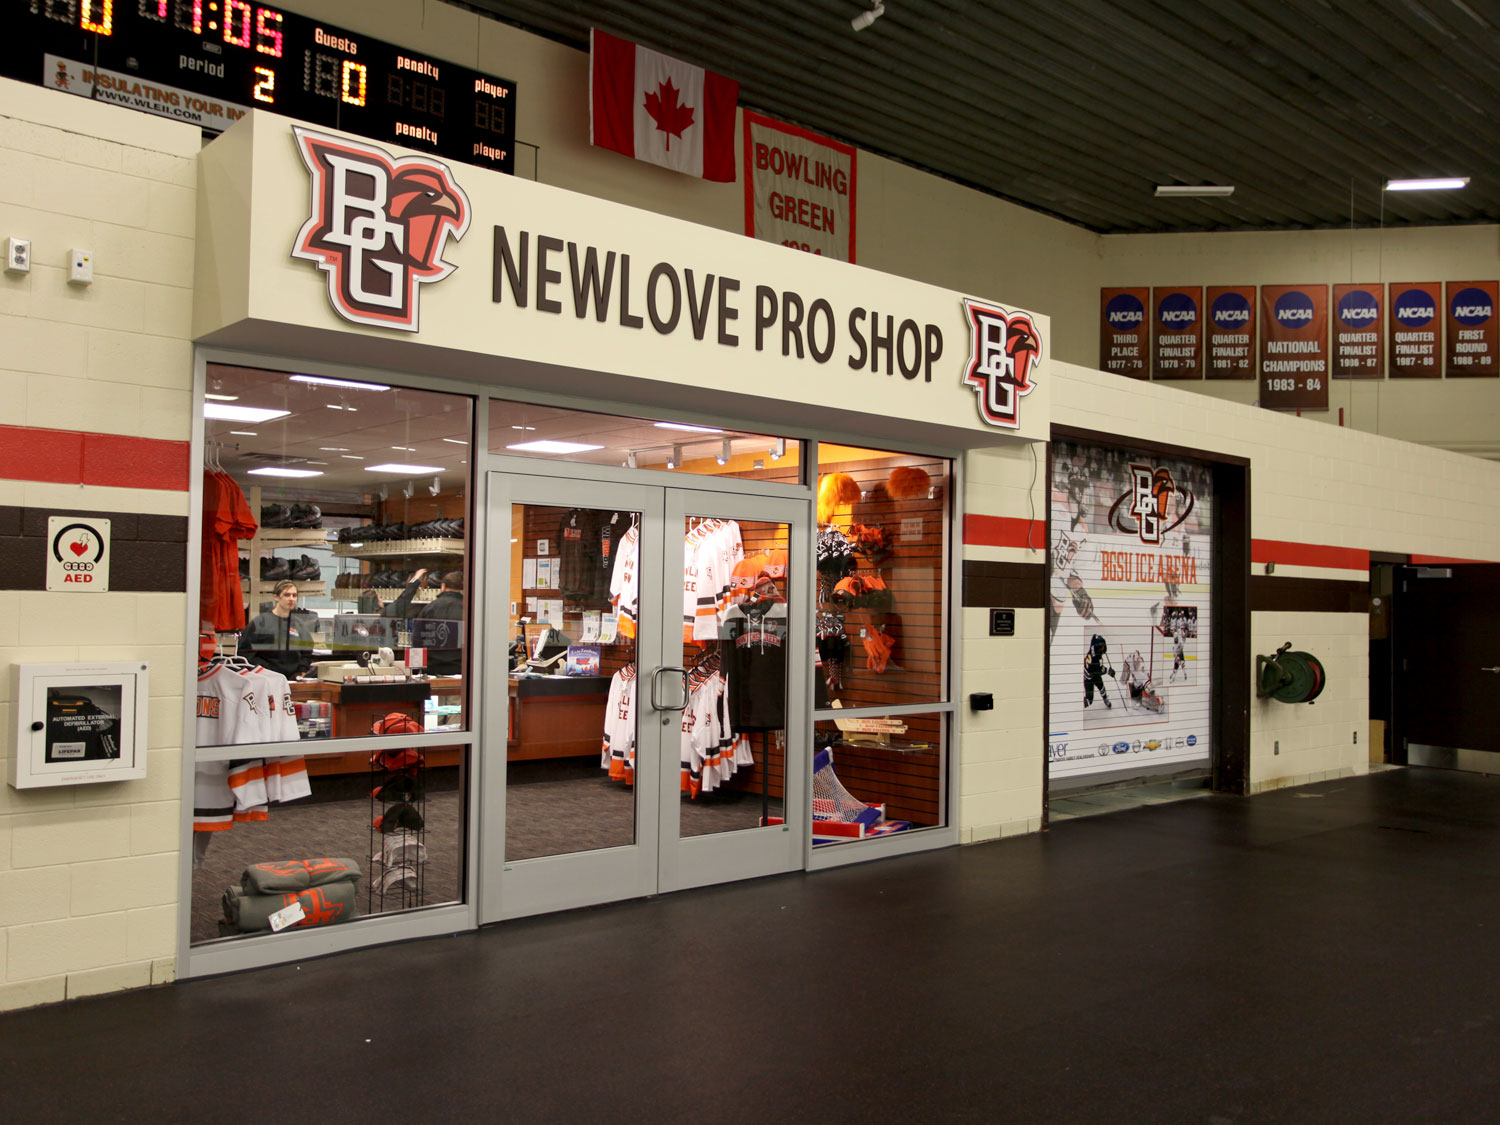 Bowling Green State University Hockey Pro Shop Signage